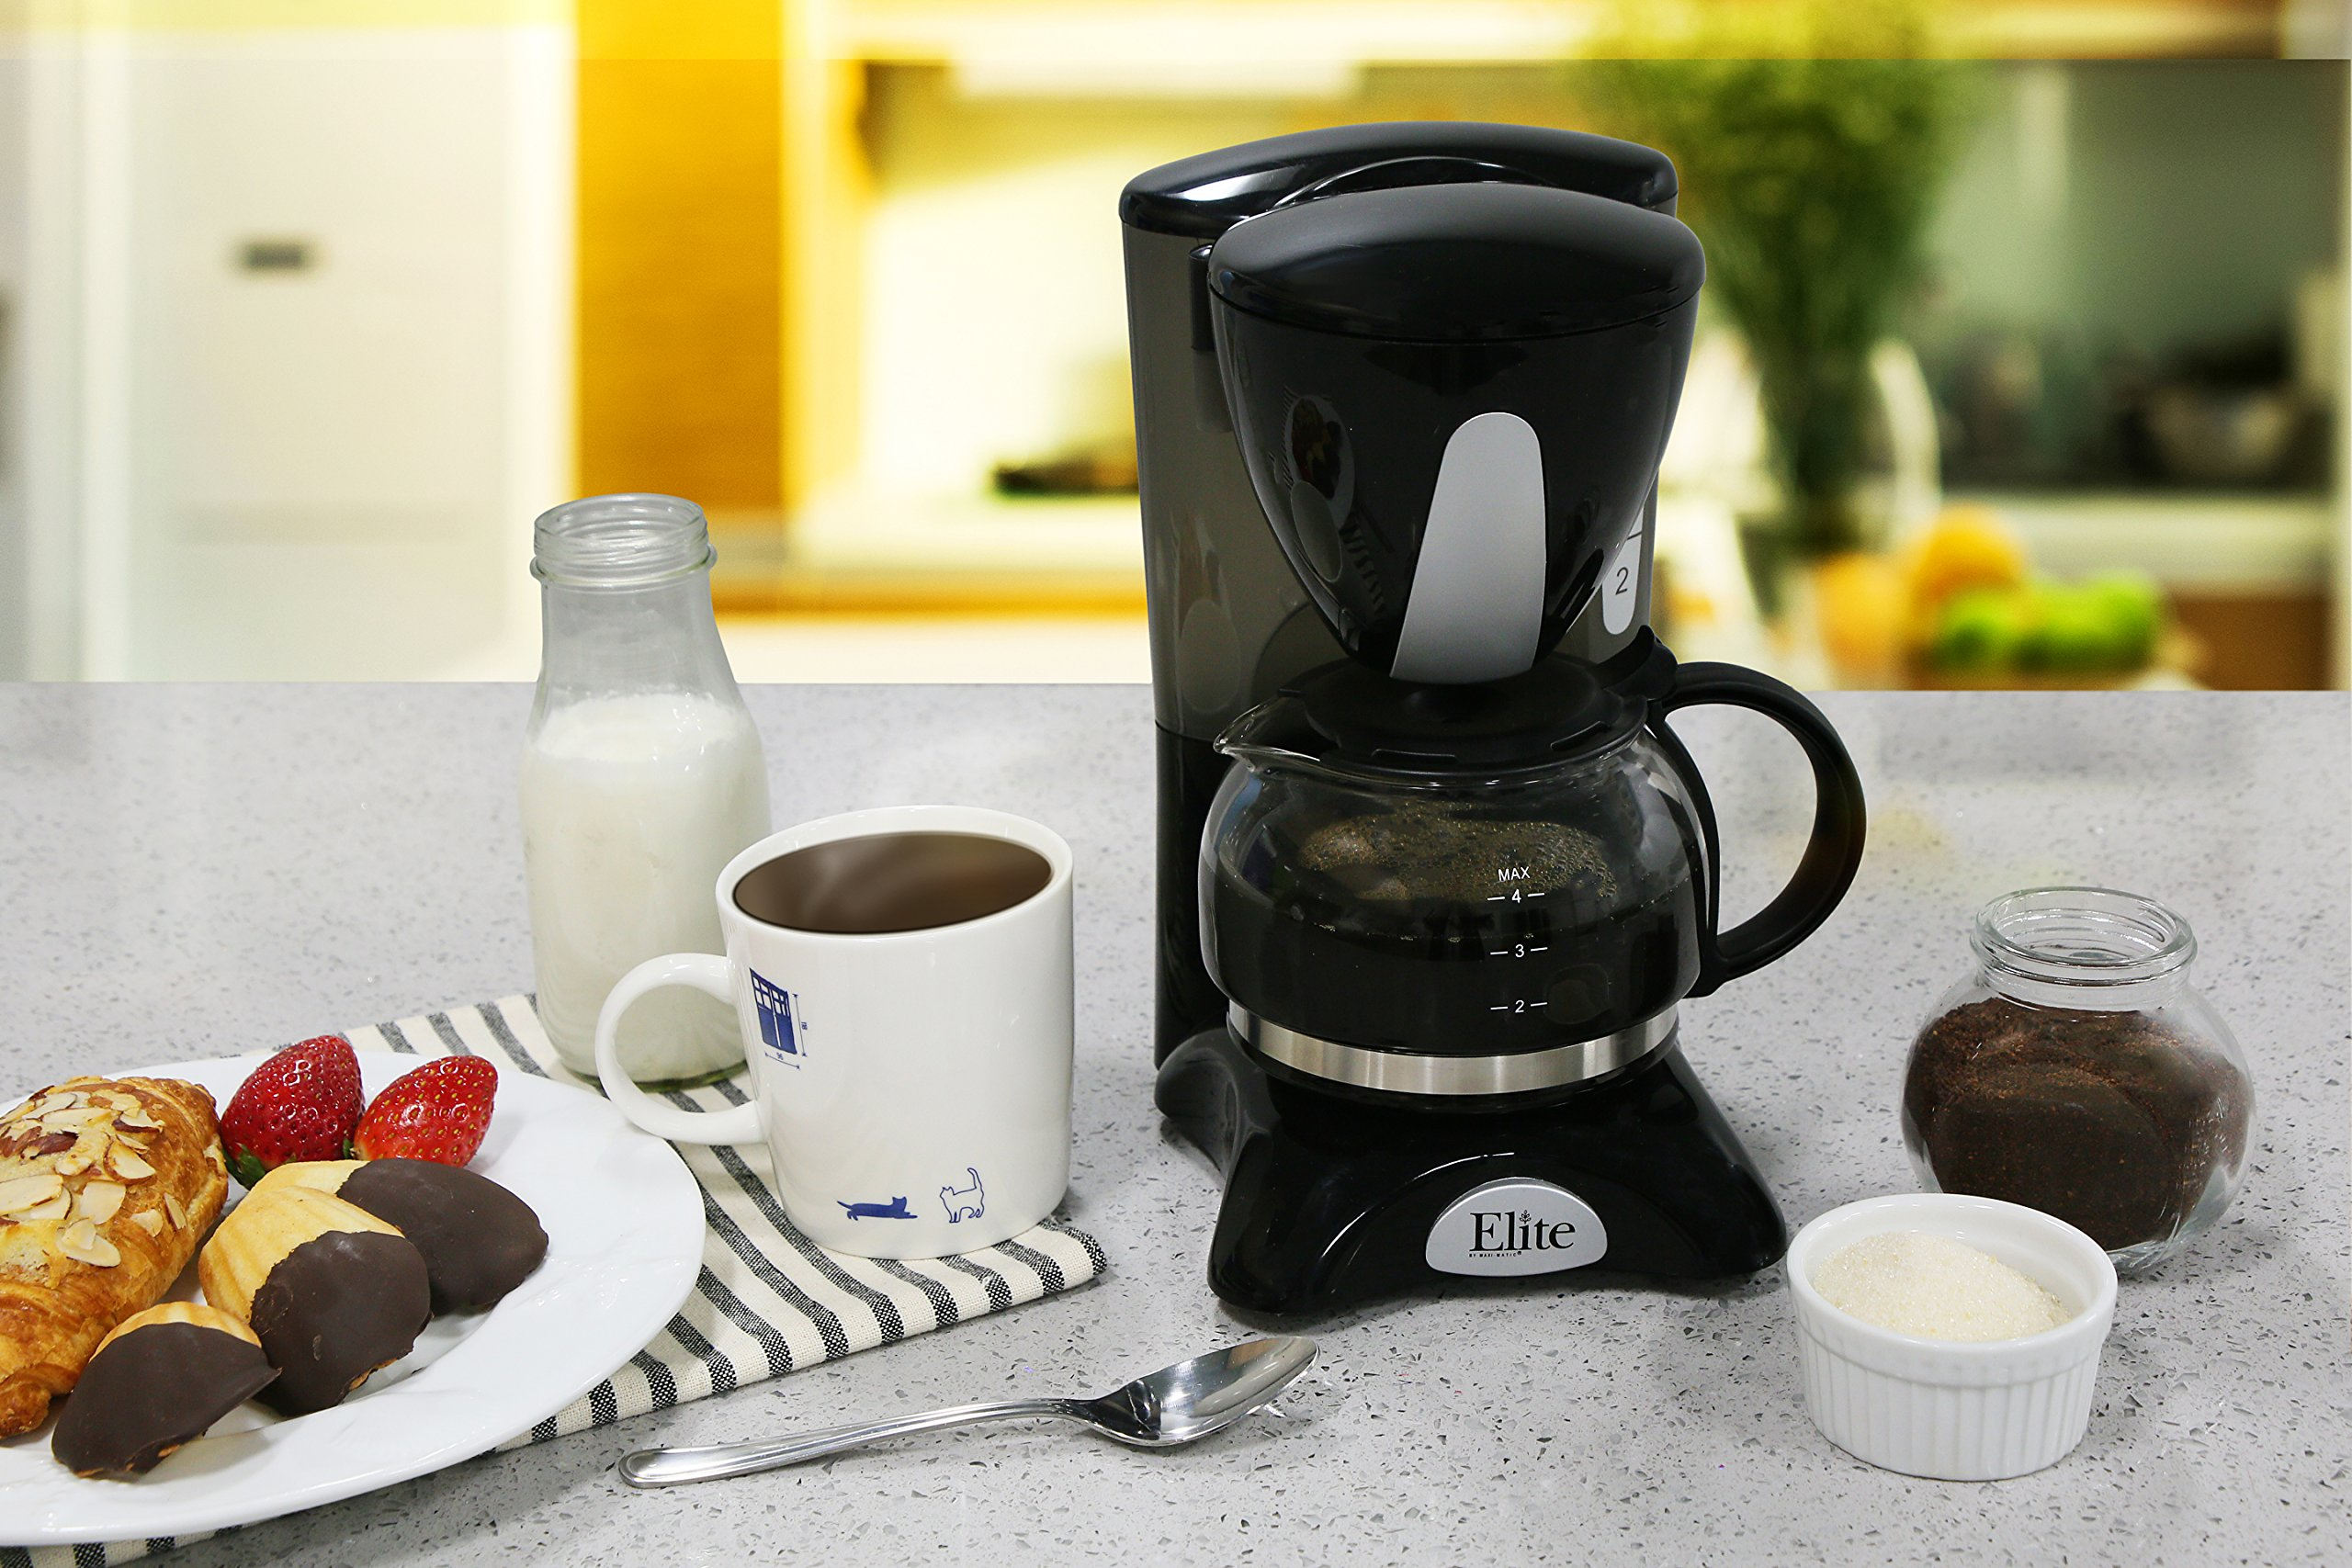 Elite Cuisine EHC-2022 Maxi-Matic 4 Cup Coffee Maker with Pause and Serve, Black by Maxi-Matic (Image #7)